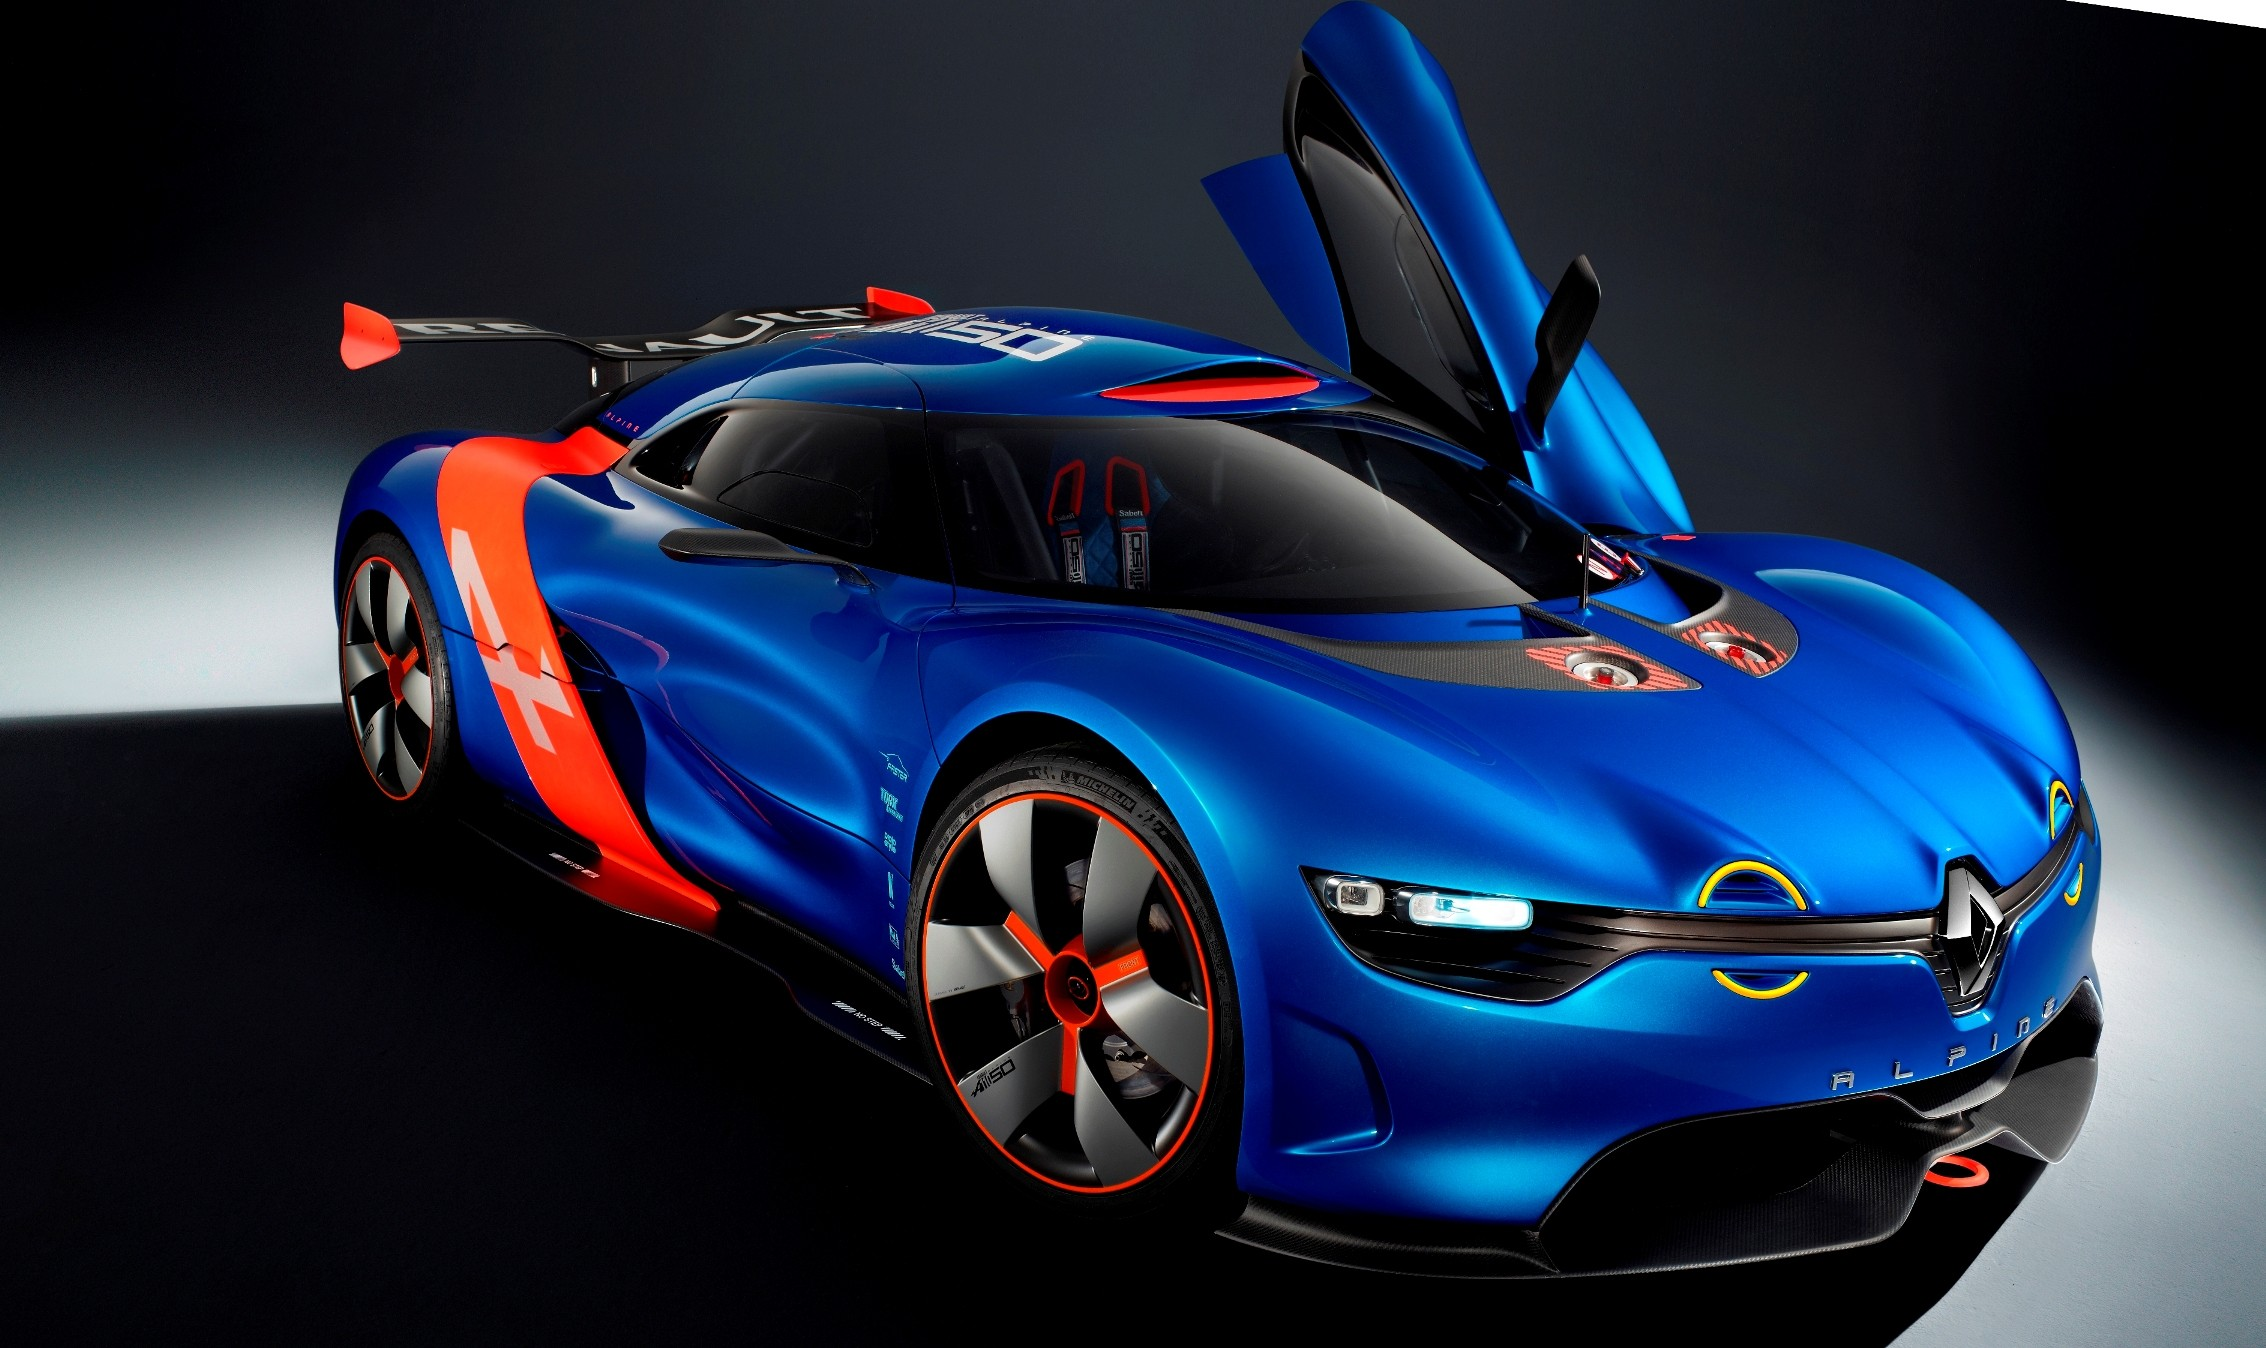 2012 Renault Alpine A110 50 Is A Blend Of 1964 M64 And A110 Berlite